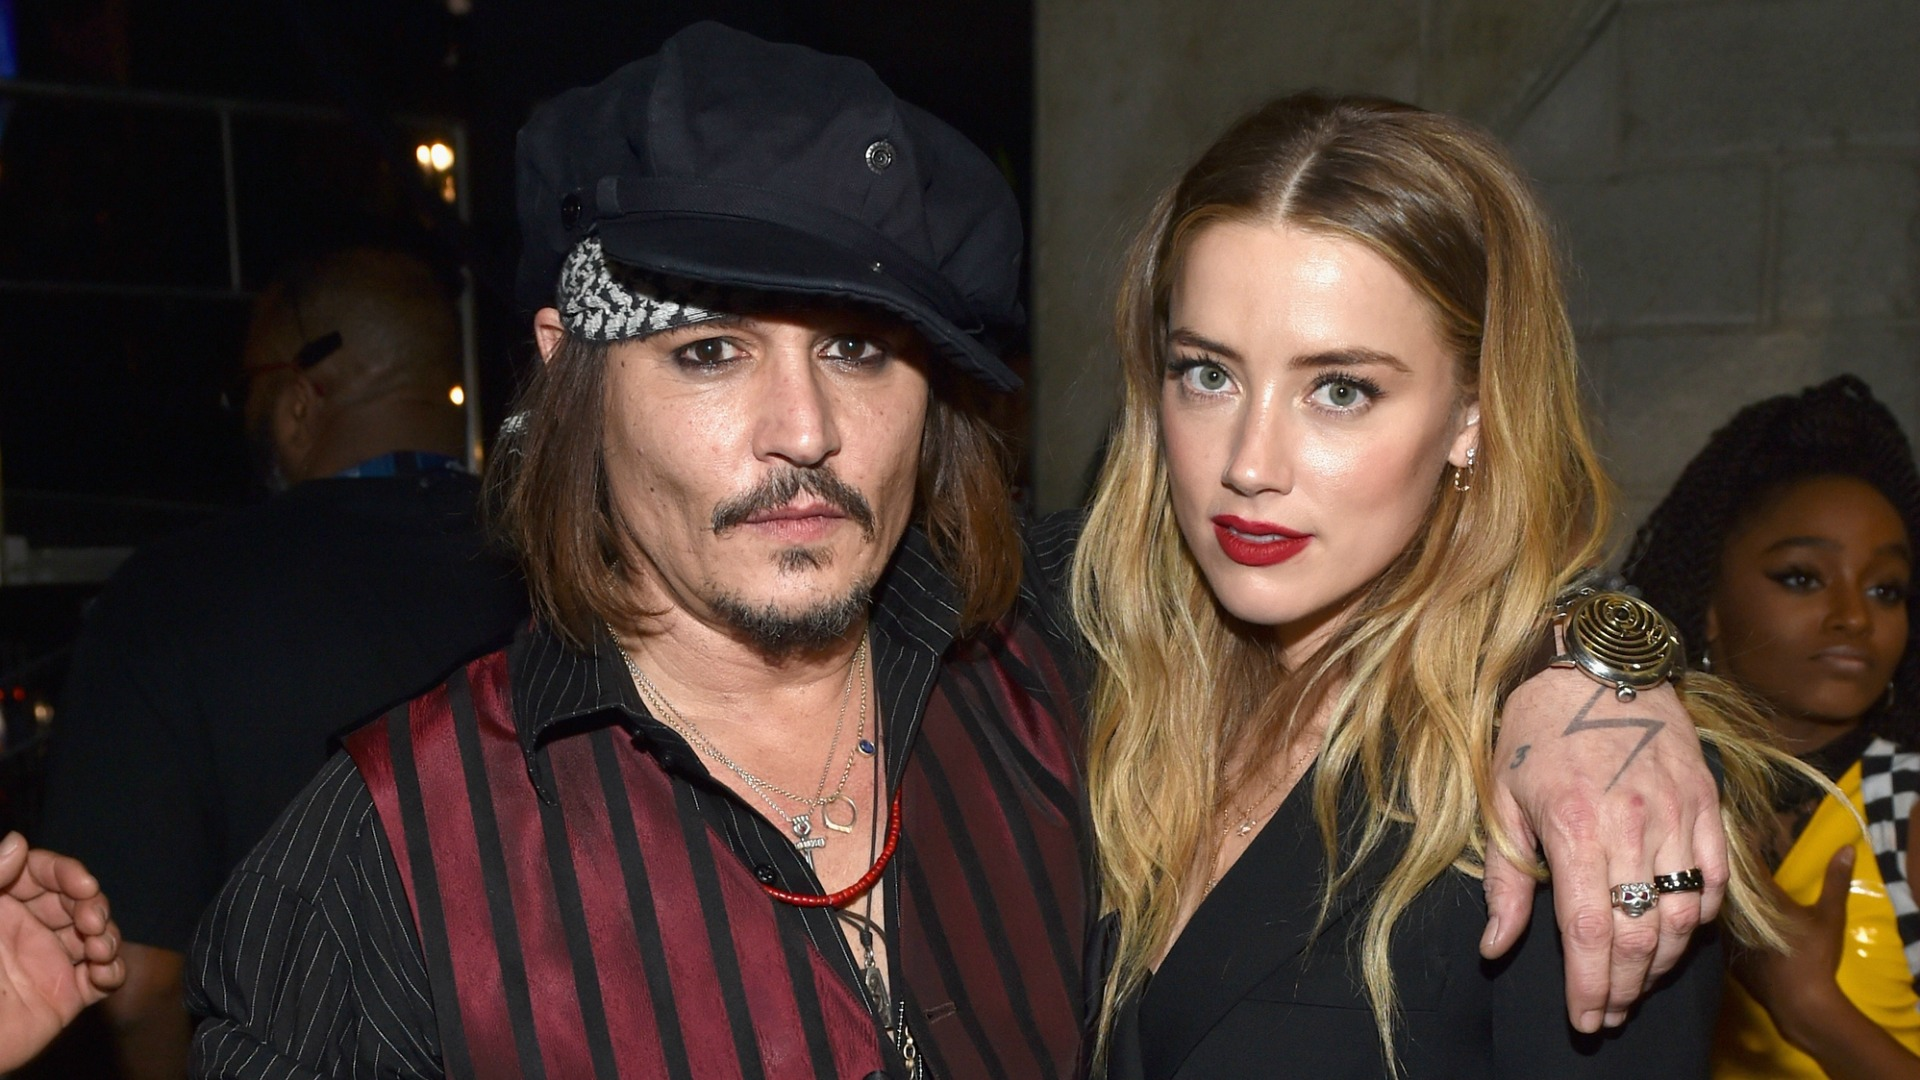 Amber Heard's bruises came from Saturday night fight – report